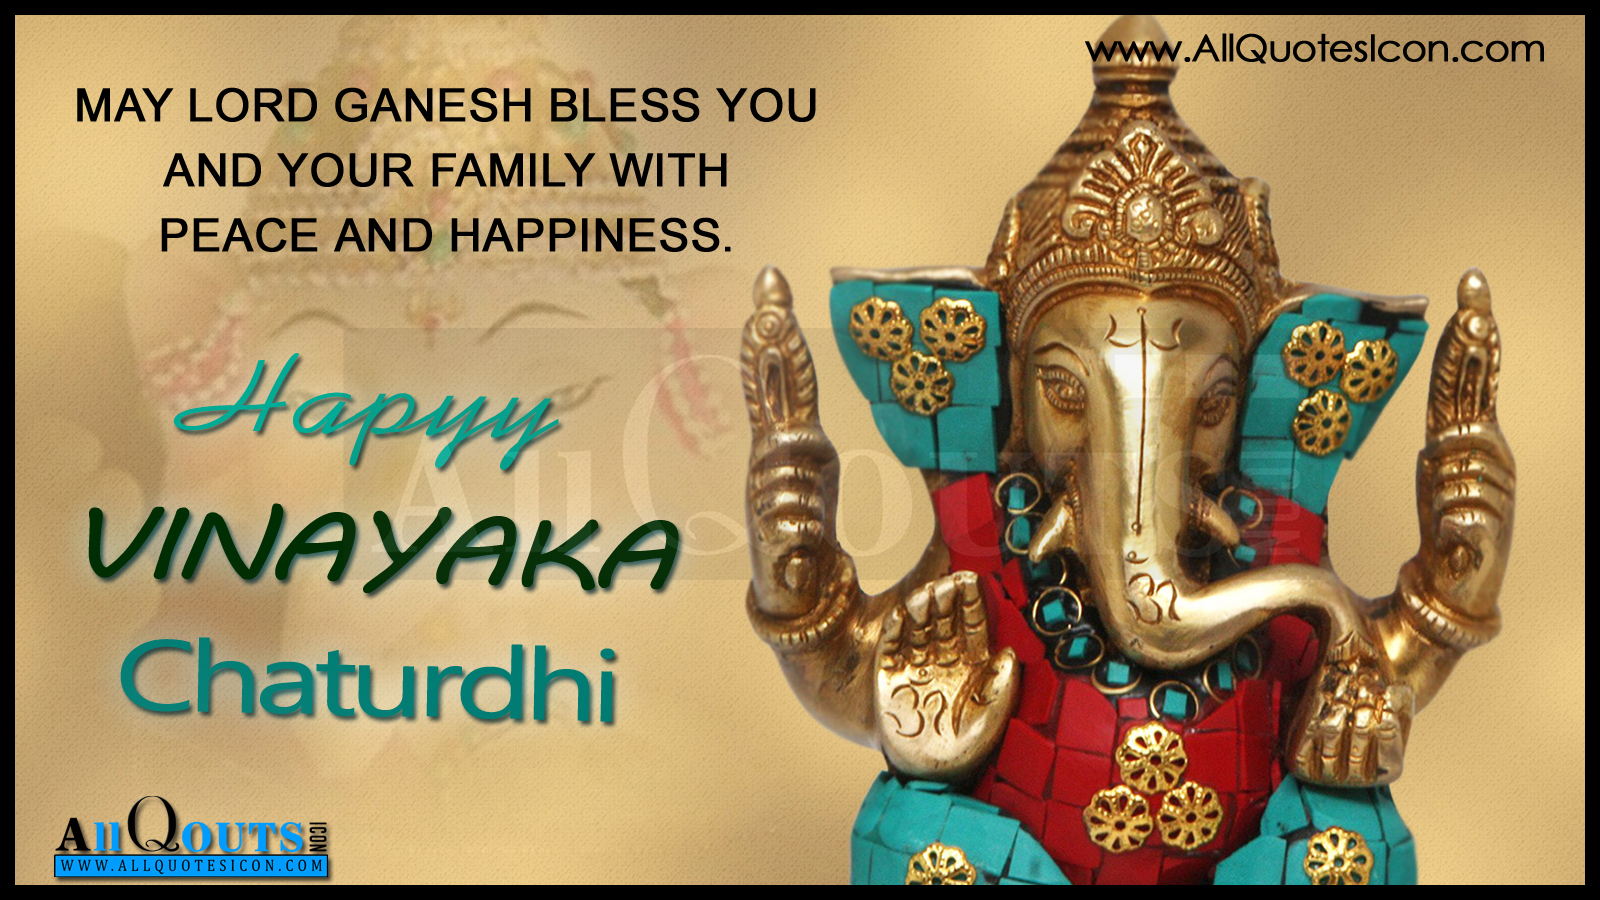 Lord Ganes Bless You Quotes And Hd Wallpapers Ganesh